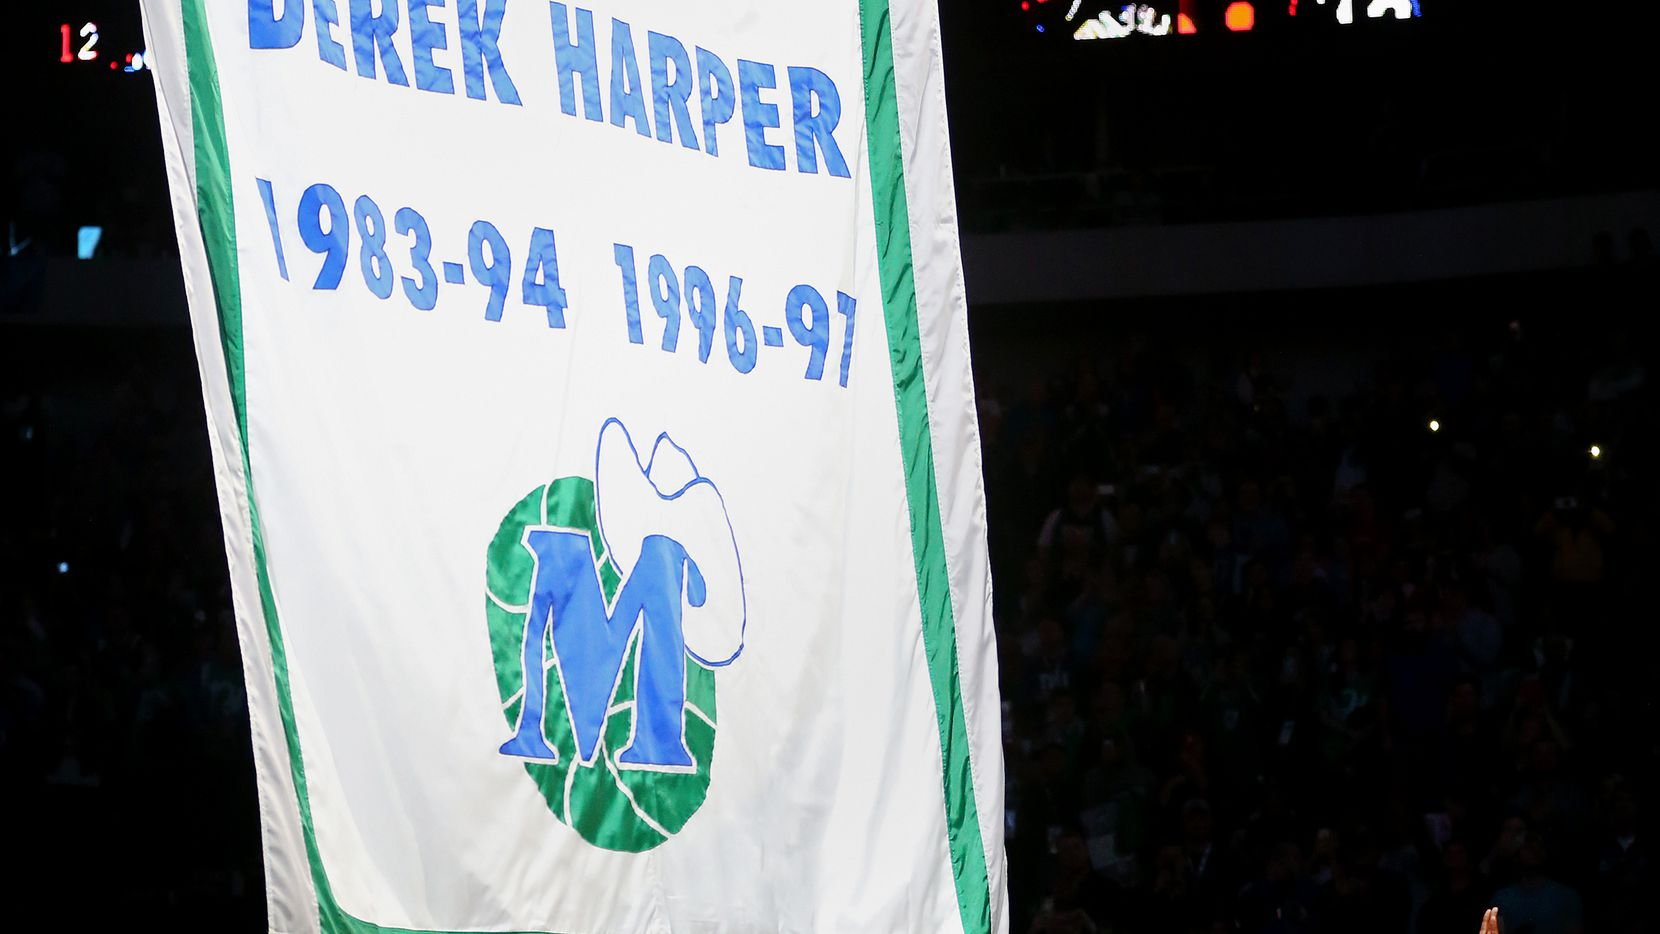 Former Dallas Mavericks player Derek Harper reacts after the unveils of his retired number 12 jersey during halftime of a National Basketball League game between the New York Knicks and Dallas Mavericks at the American Airlines Center in Dallas Sunday January 7, 2018. (Andy Jacobsohn/The Dallas Morning News)